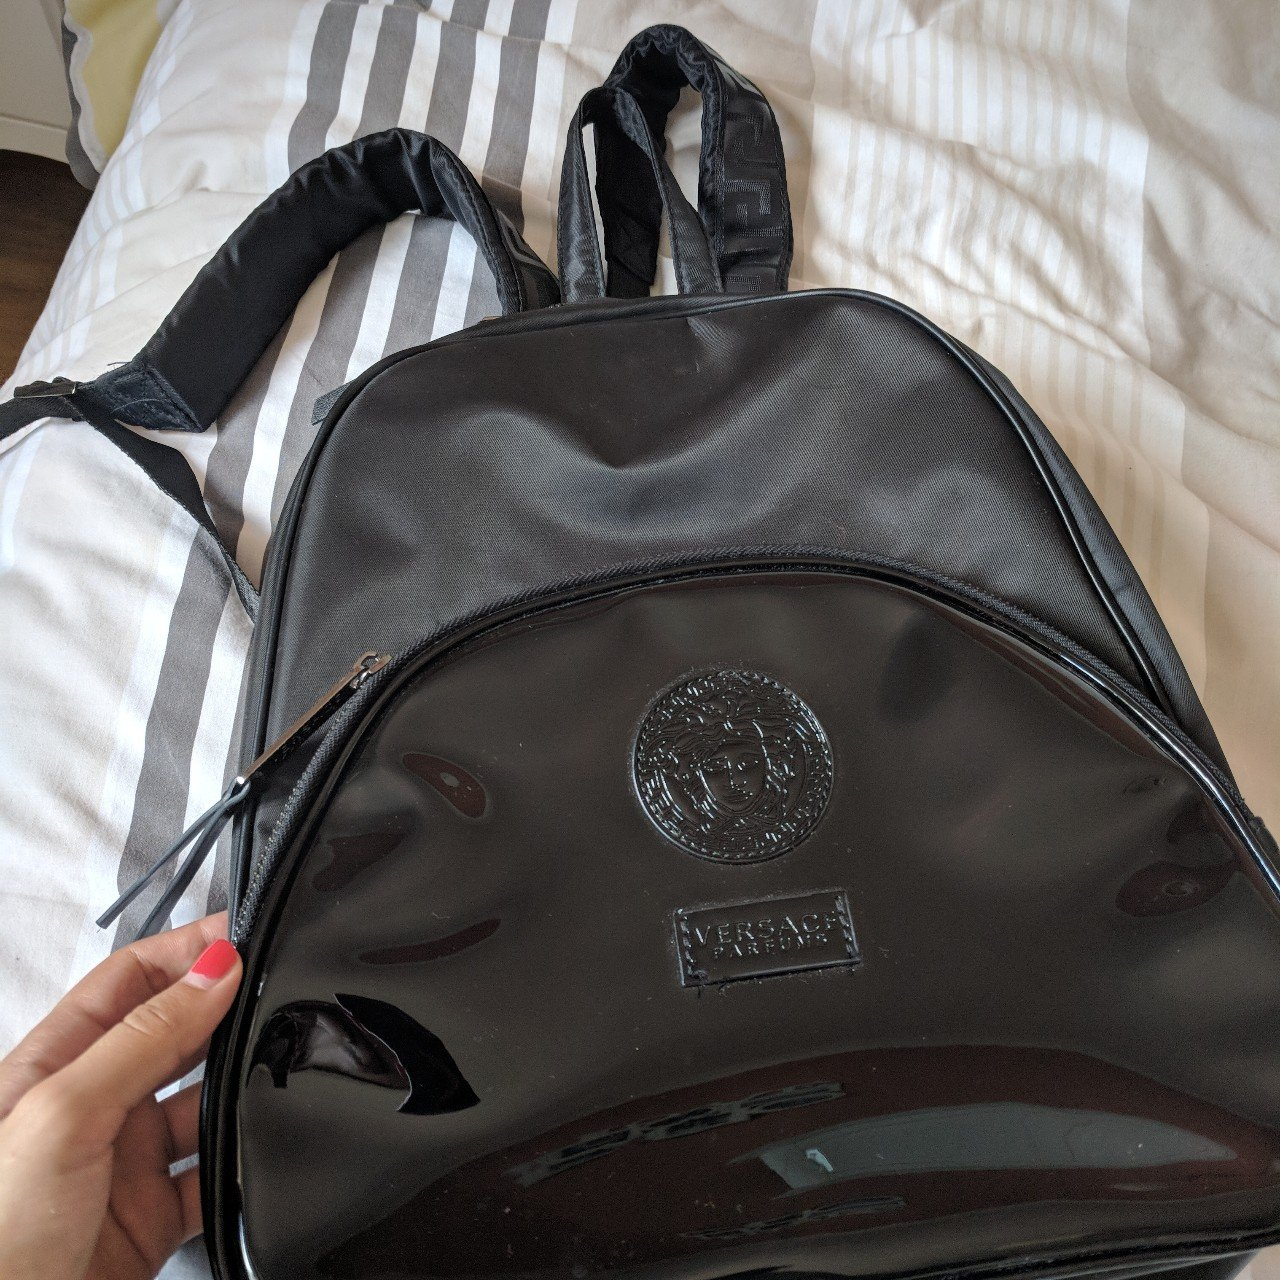 f6a4375704f6 Versace back pack!!! Only worn once. Basically new - Depop